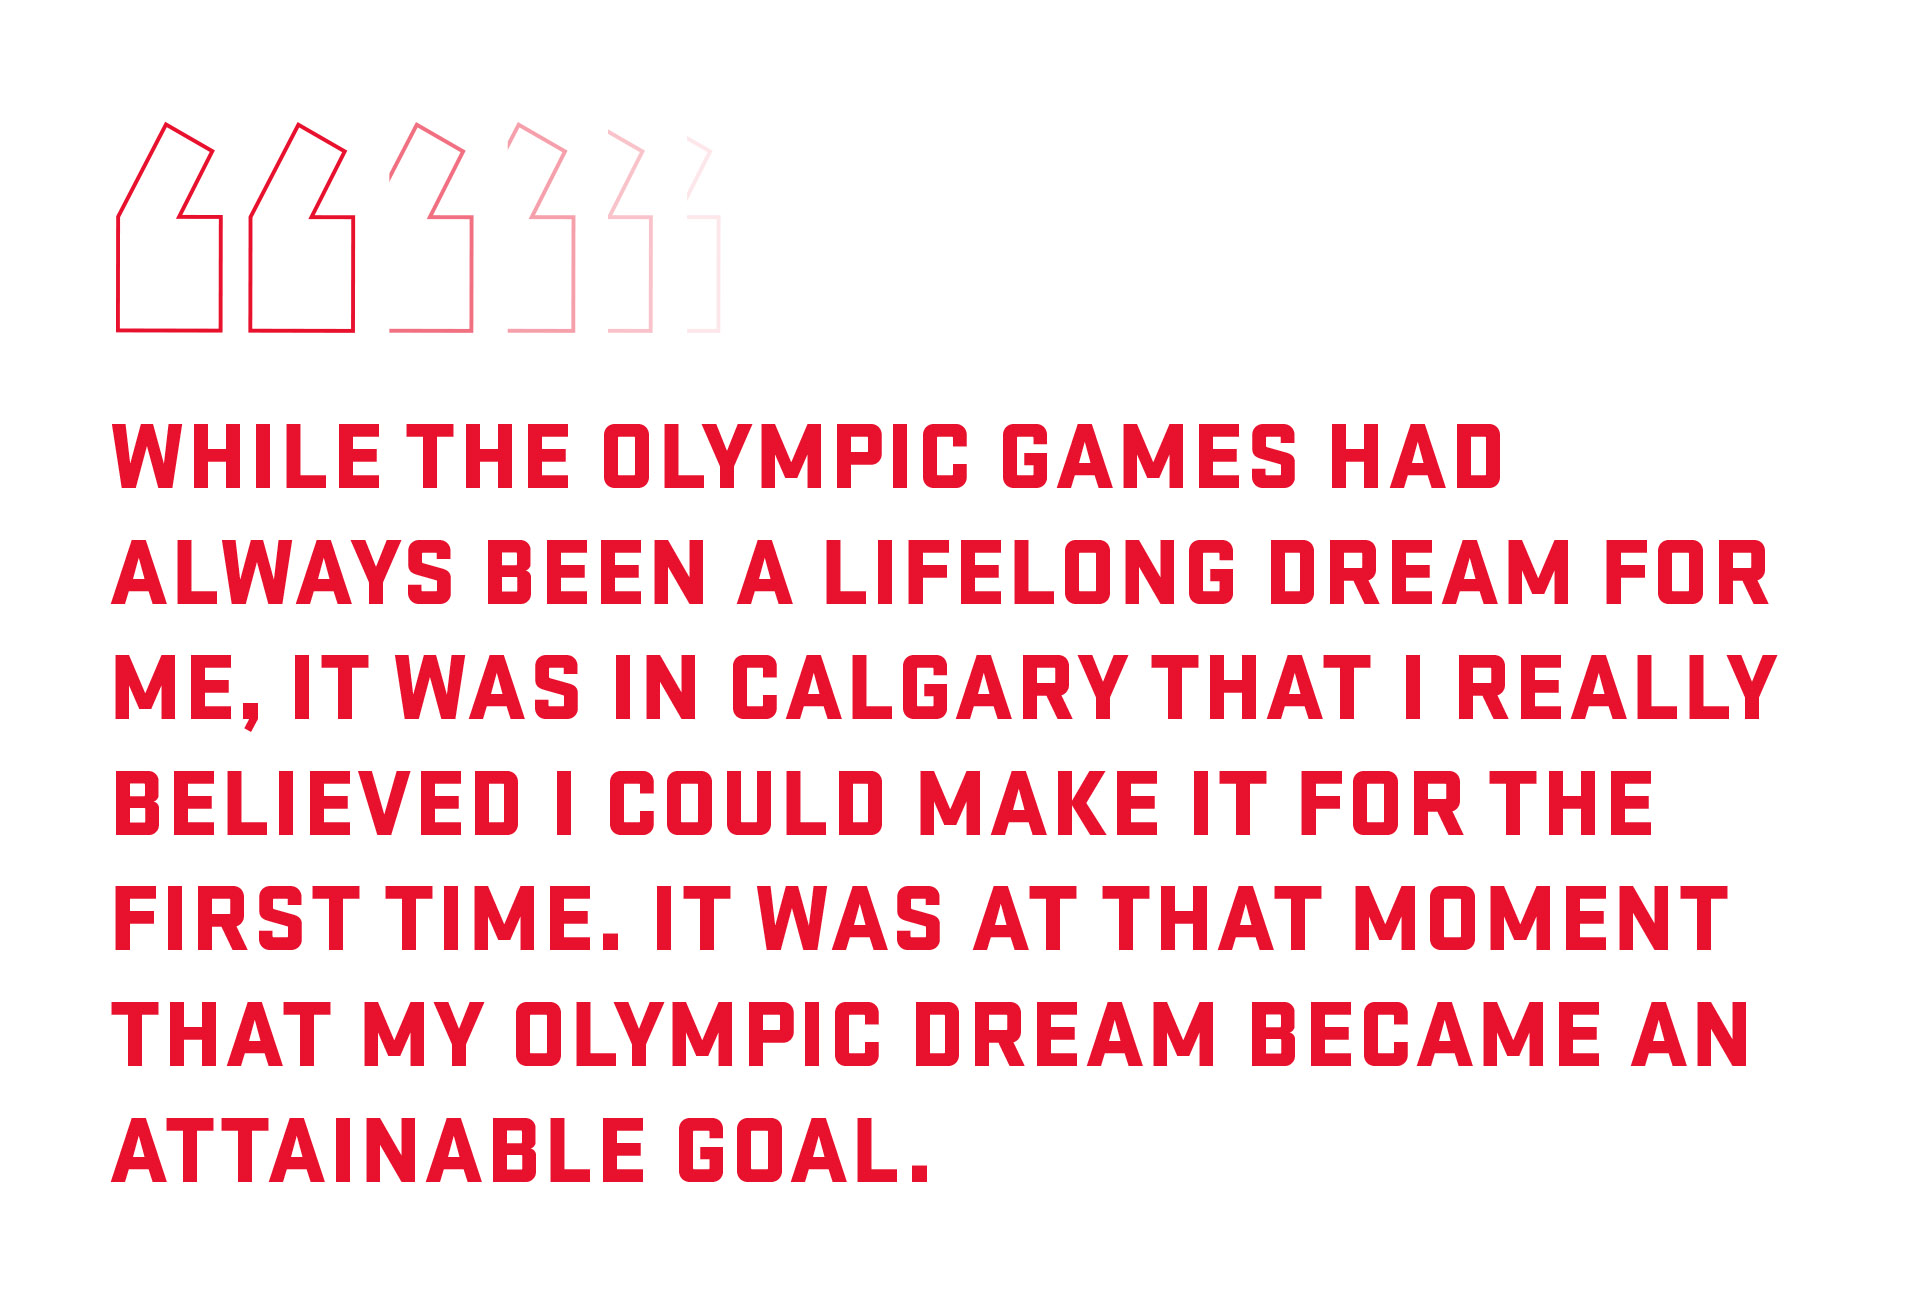 Pull quote: While the Olympic Games had always been a lifelong dream for me, it was in Calgary that I really believed I could make it for the first time.